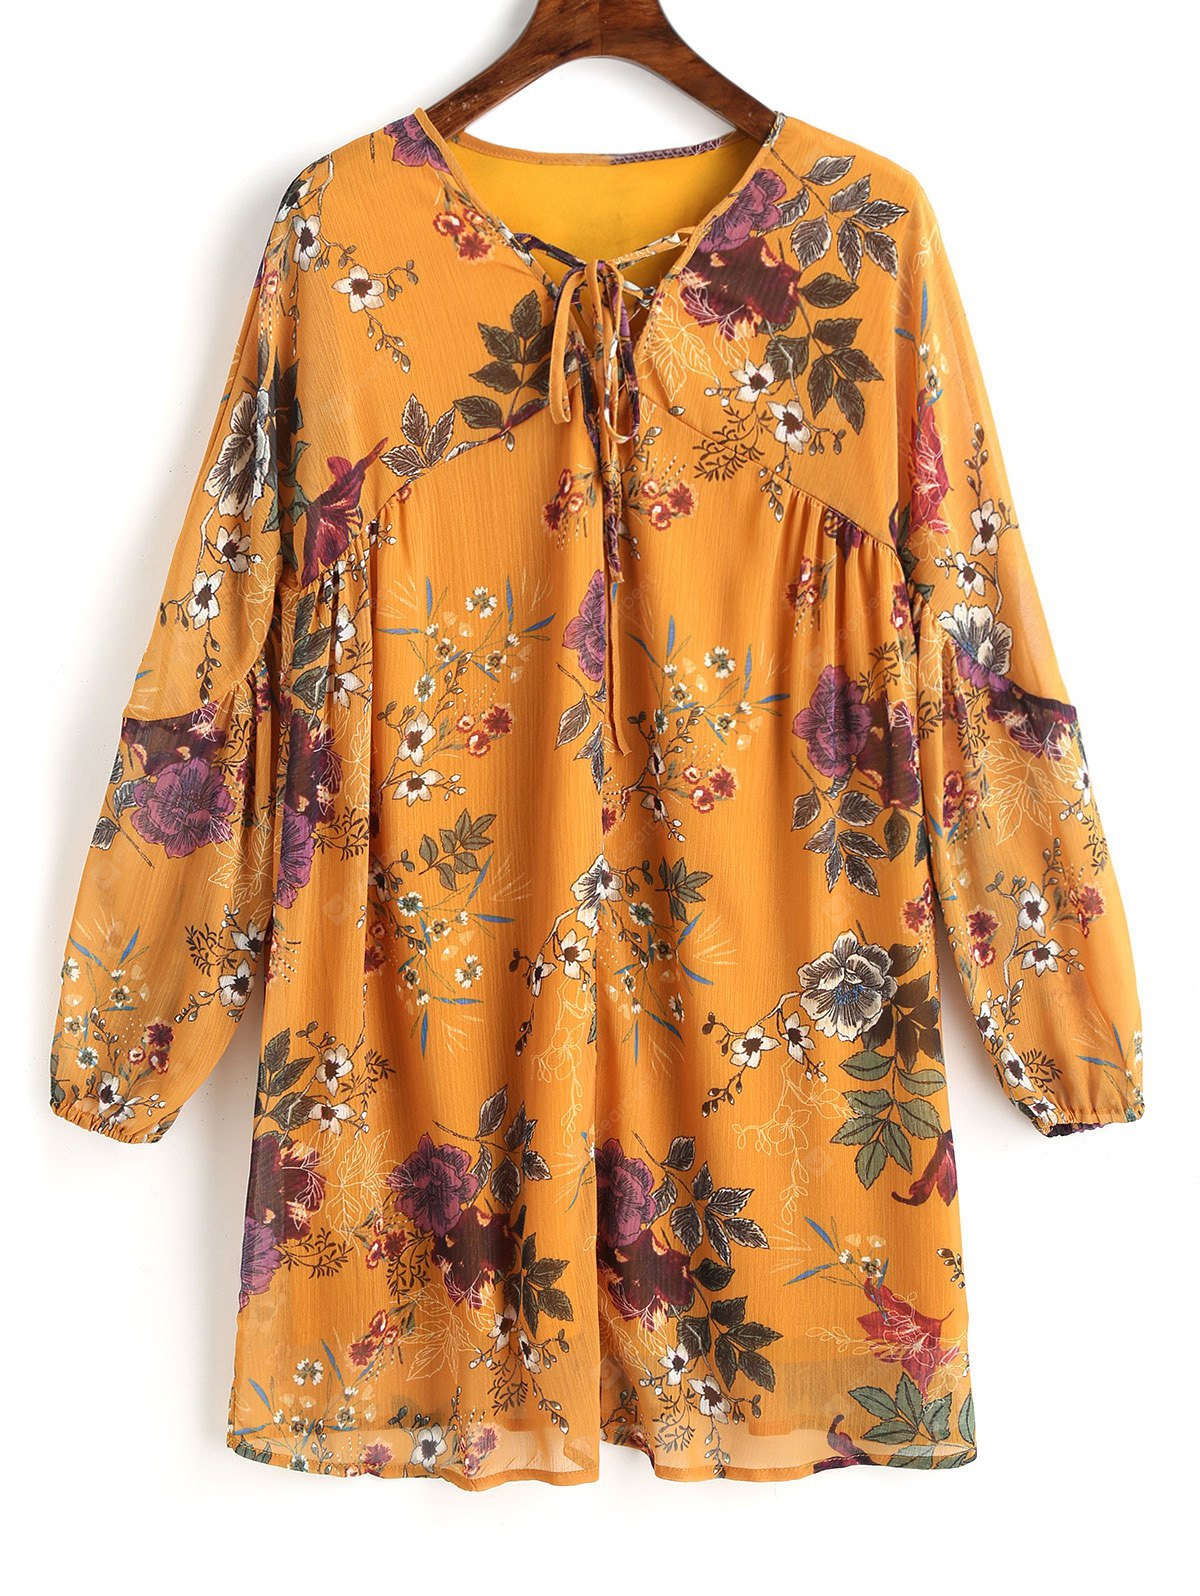 MUSTARD S Floral Lace Up Tunic Mini Dress